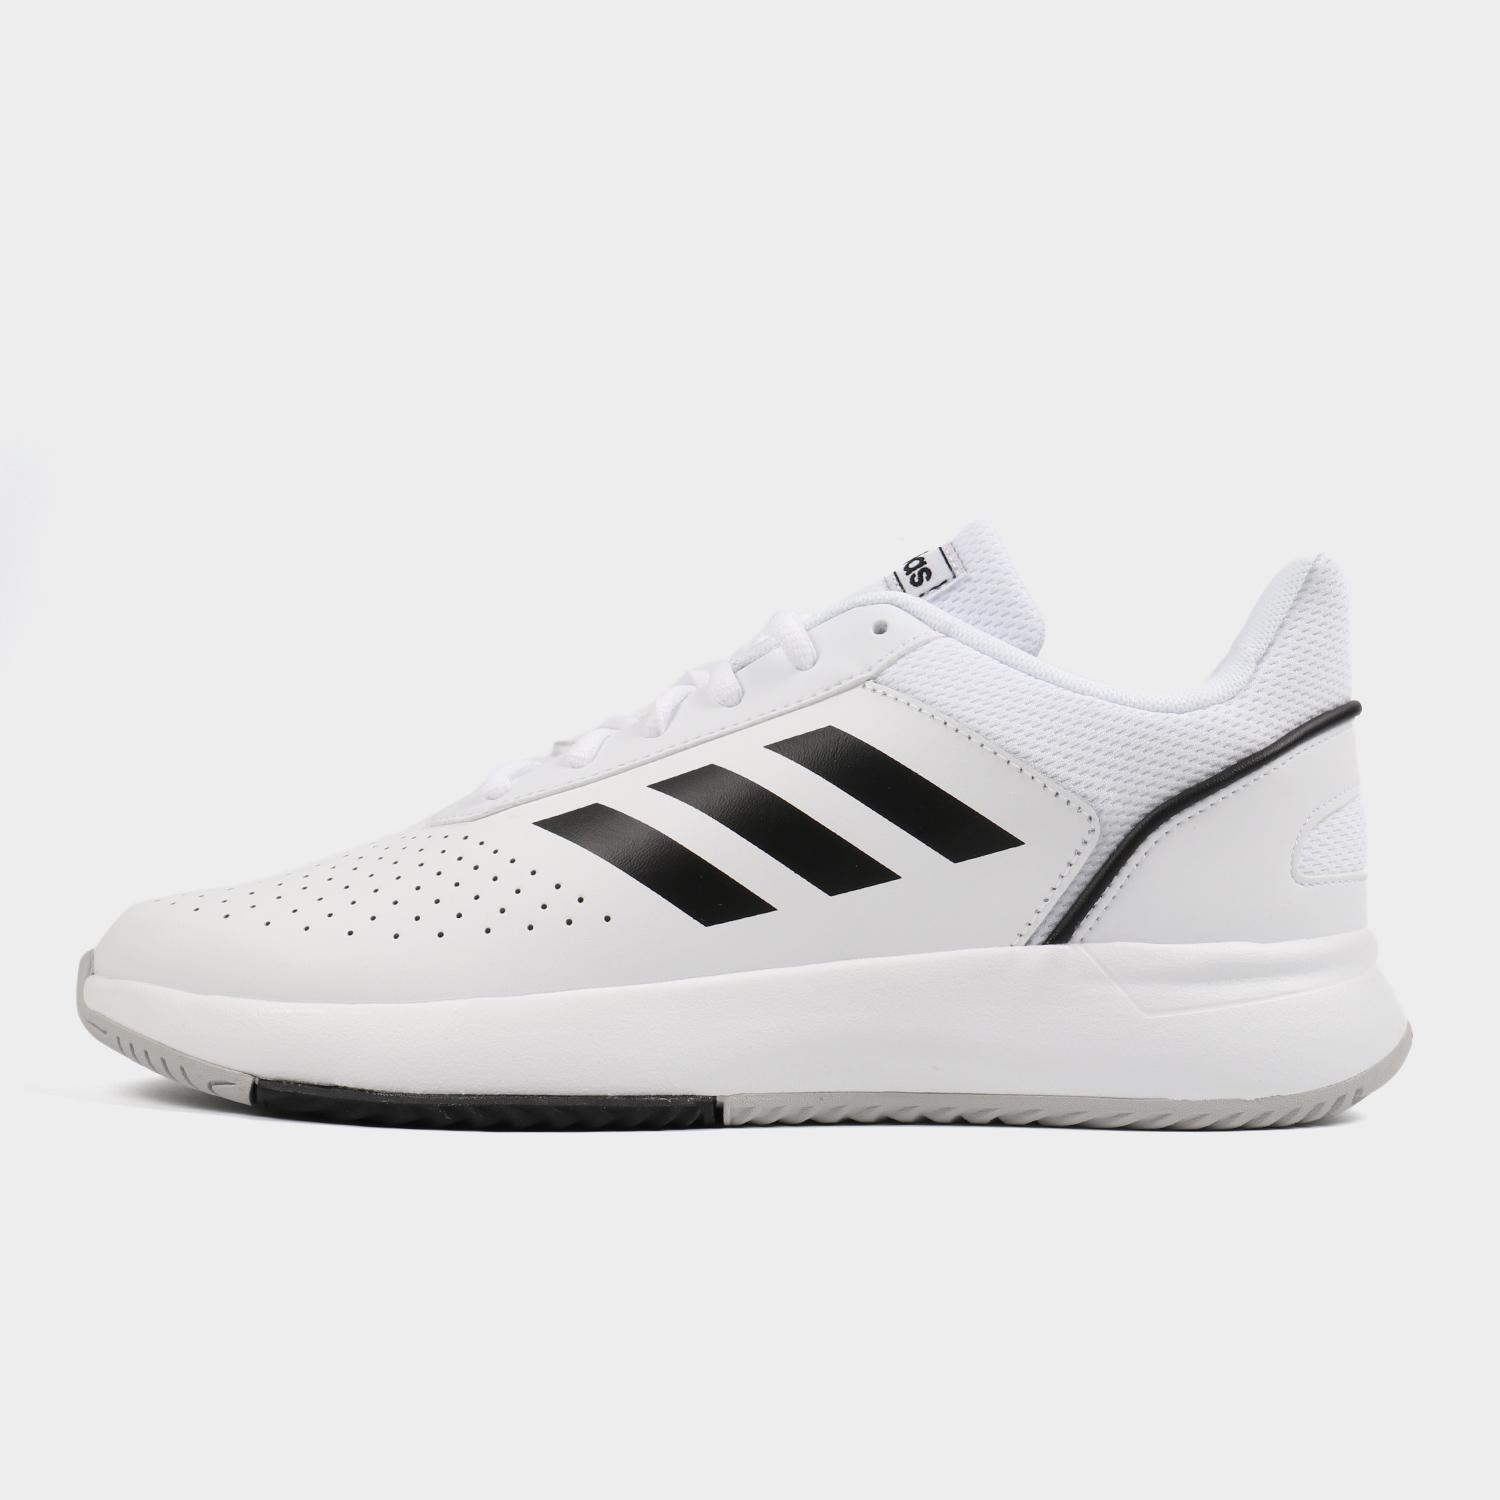 1da401b8664 Adidas Spring courtsmash Male Low Top Breathable Sports Tennis Shoes F36718  F36715